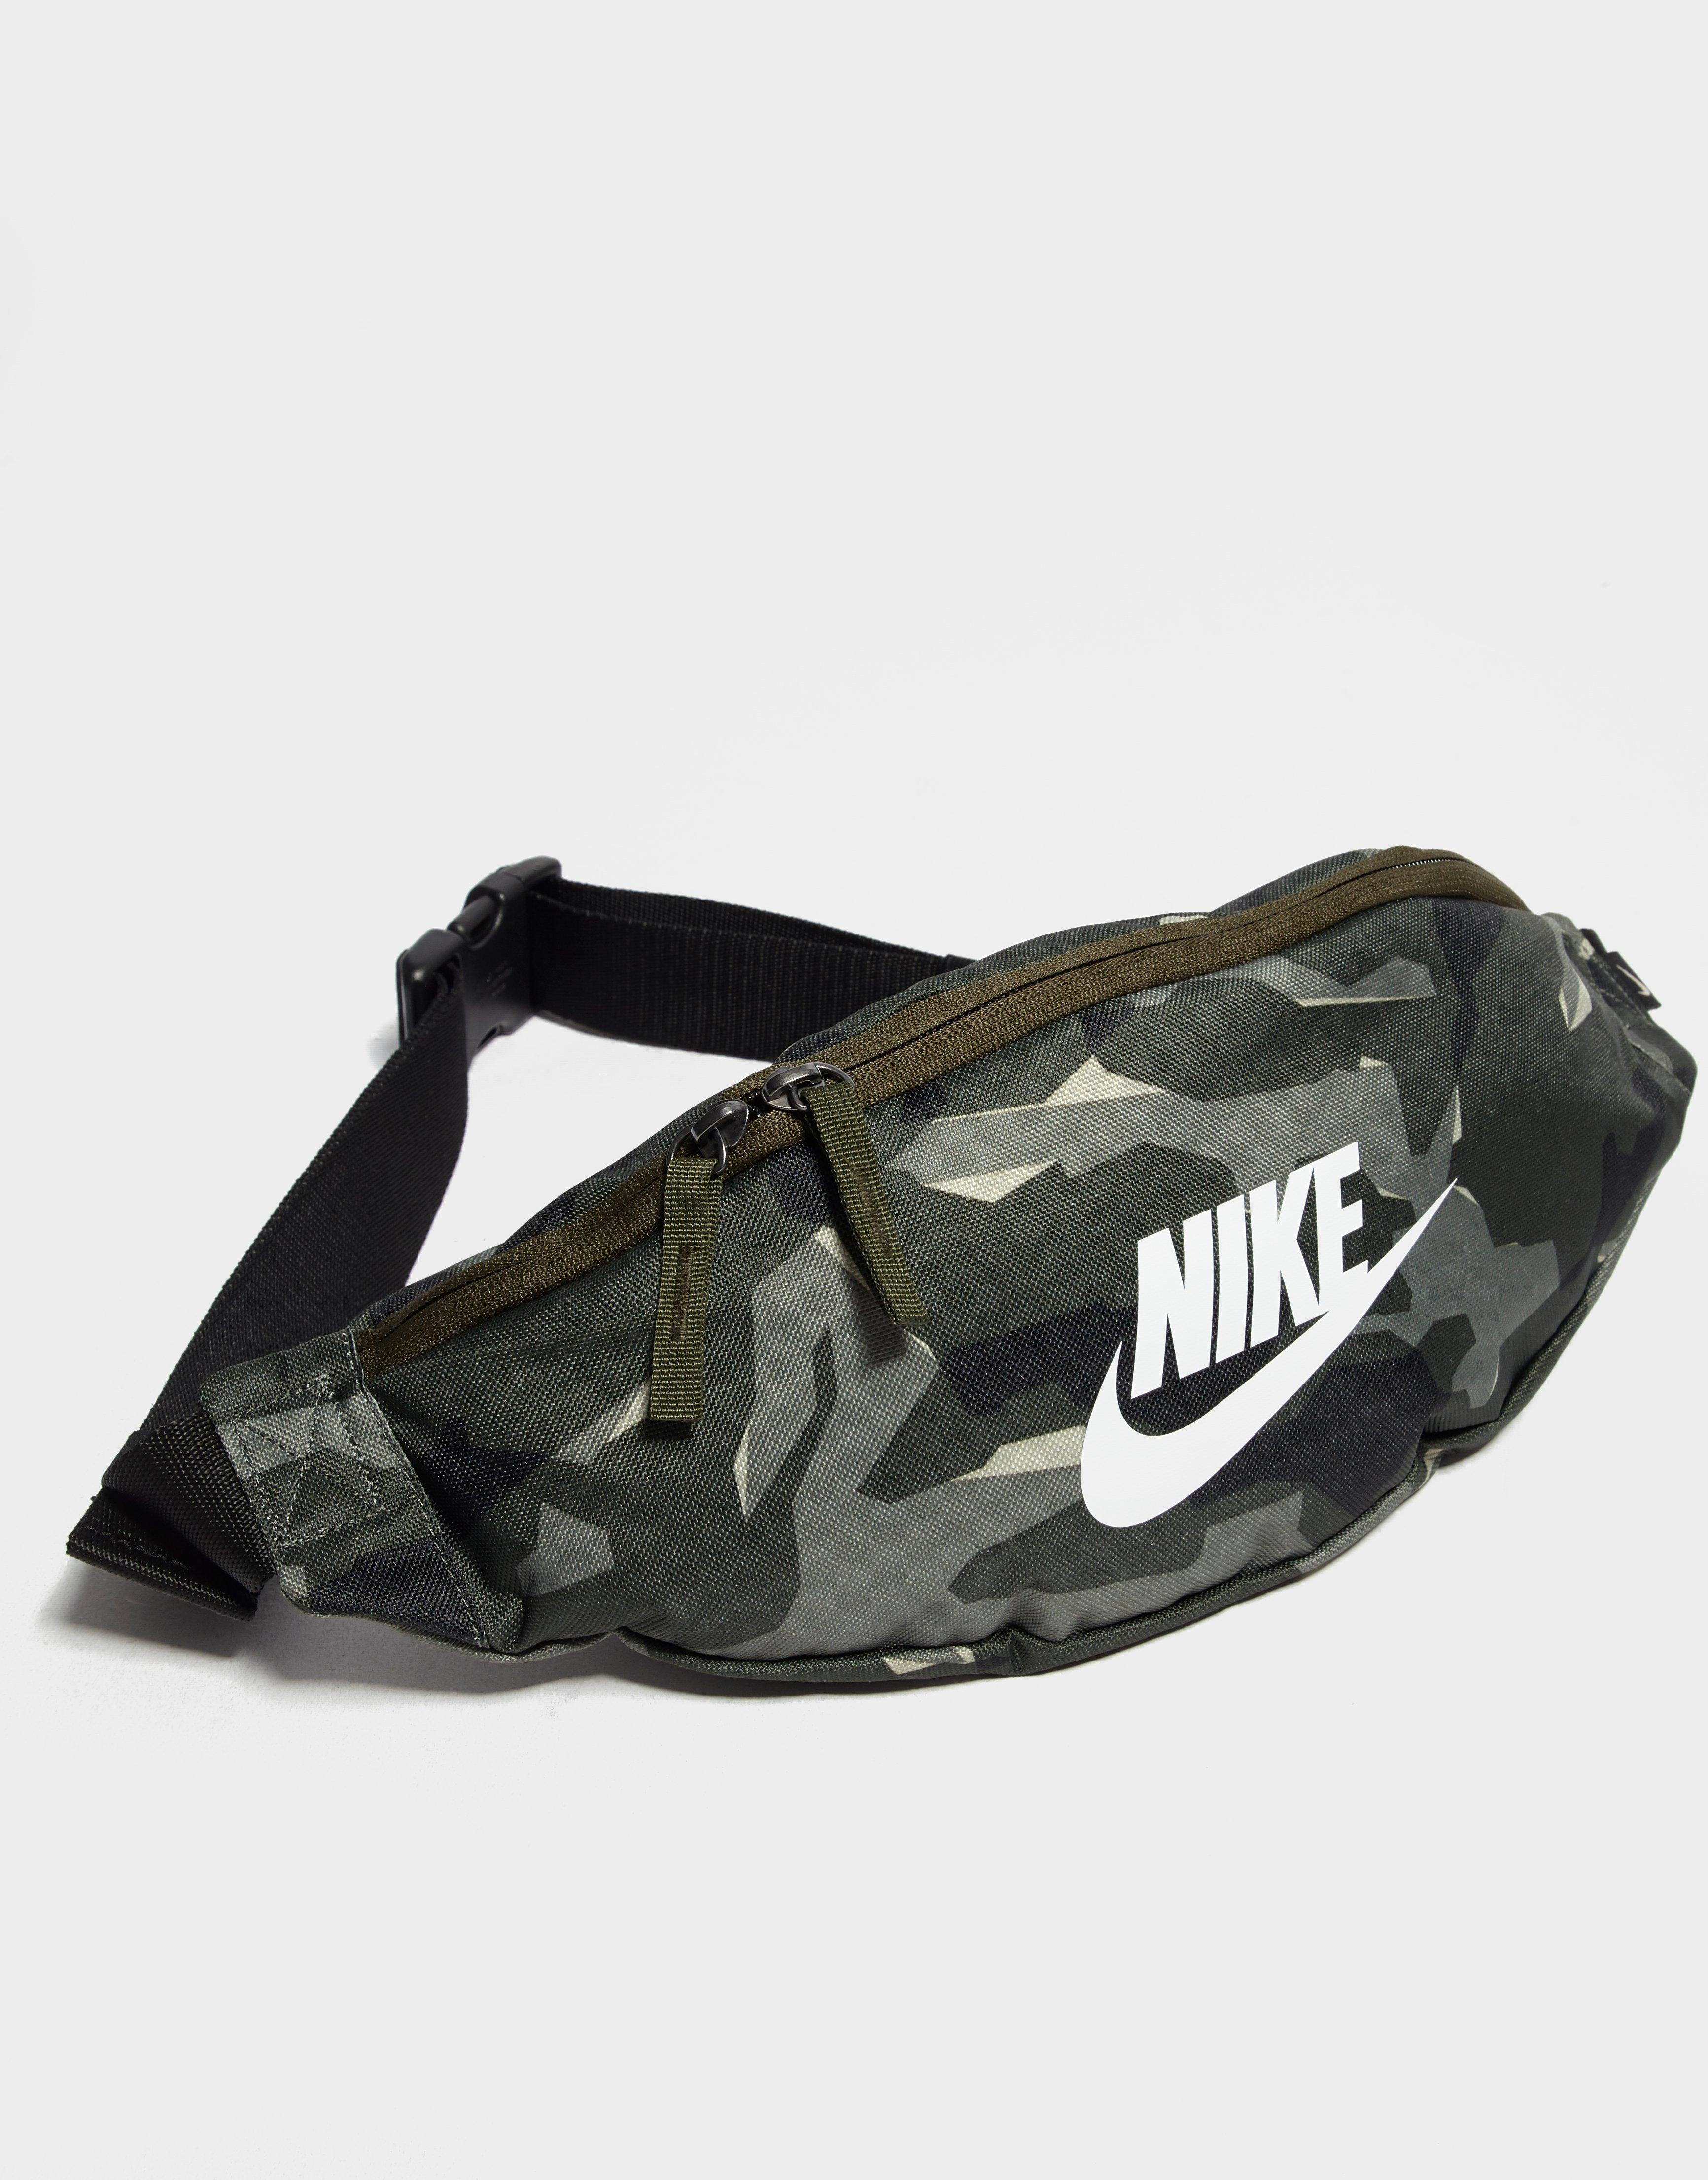 Nike camouflage waist bag Buy Cheap Buy Outlet Deals Buy Cheap Footlocker Free Shipping In China Top Quality 3PK0gienbH